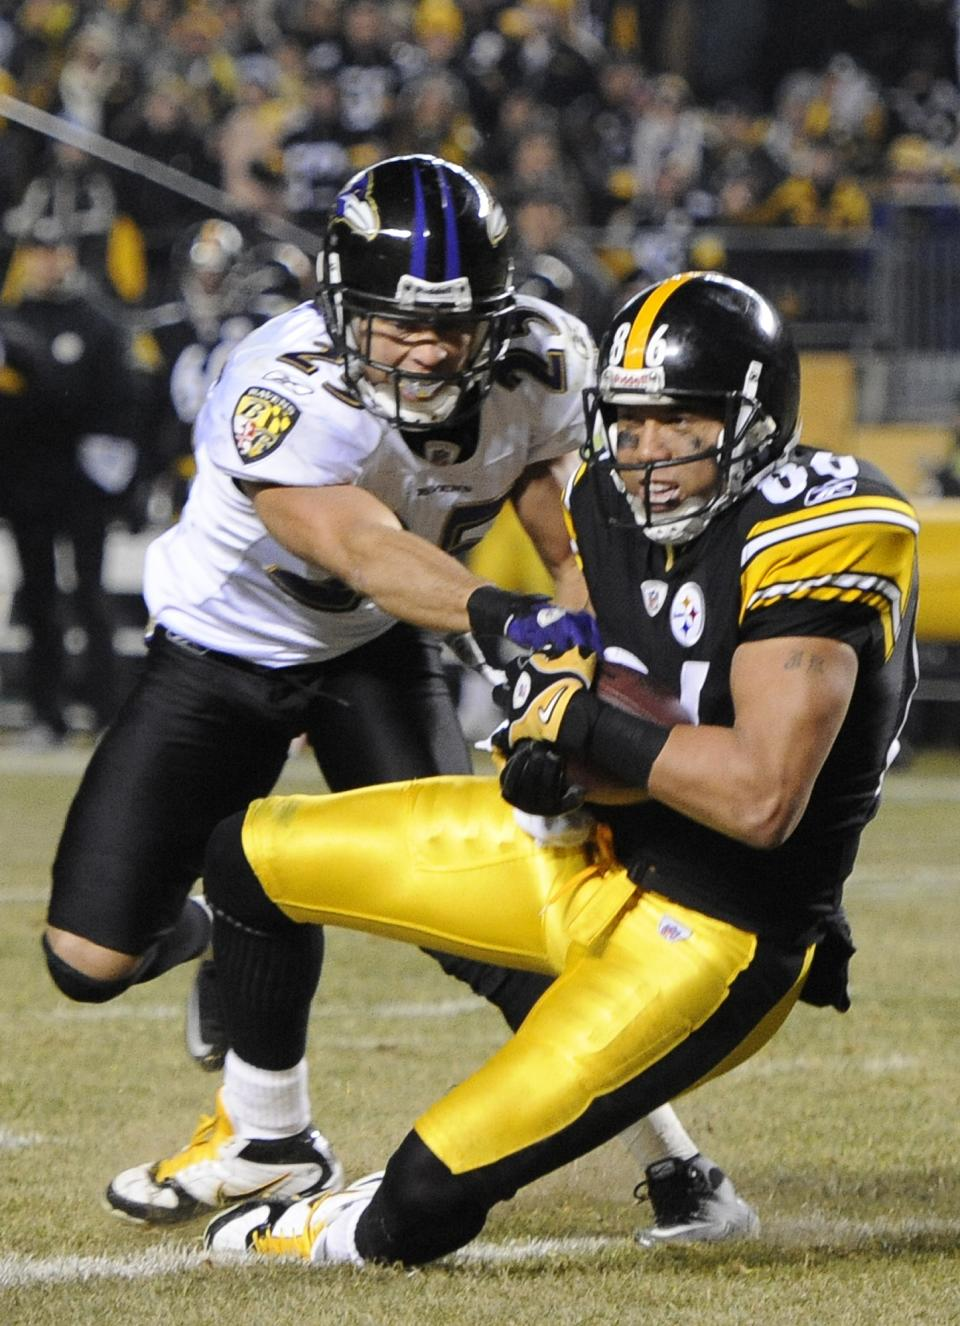 Pittsburgh Steelers wide receiver Hines Ward (86) catches an 8-yard touchdown pass as the Baltimore Ravens cornerback Chris Carr defends during the second half of an NFL divisional football game in Pittsburgh, Saturday, Jan. 15, 2011. (AP Photo/Don Wright)